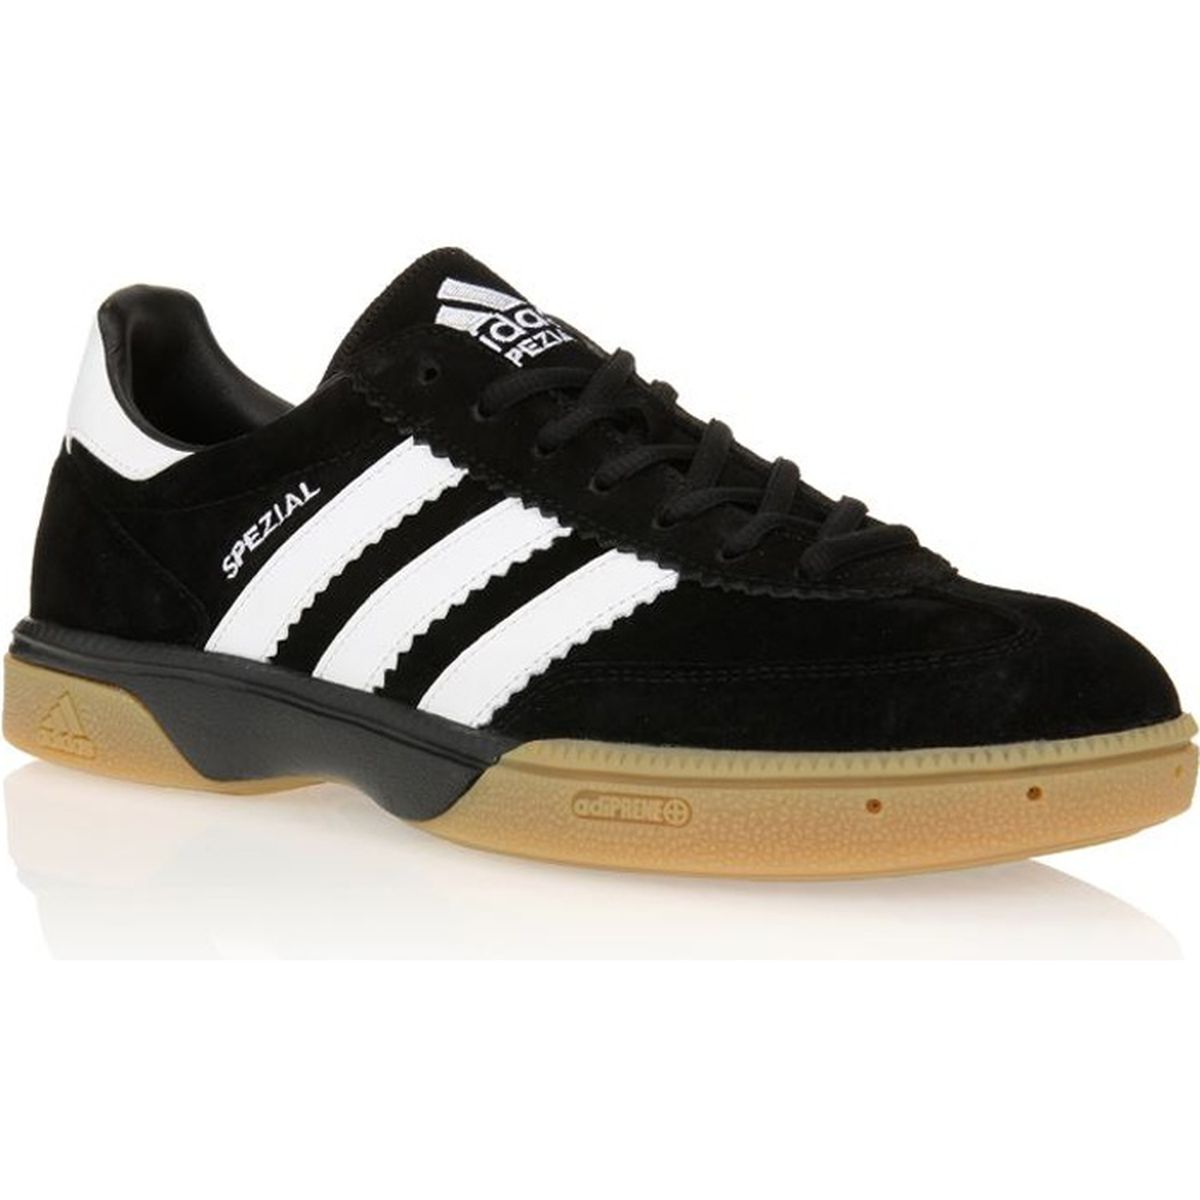 chaussure adidas handball spezial. Black Bedroom Furniture Sets. Home Design Ideas